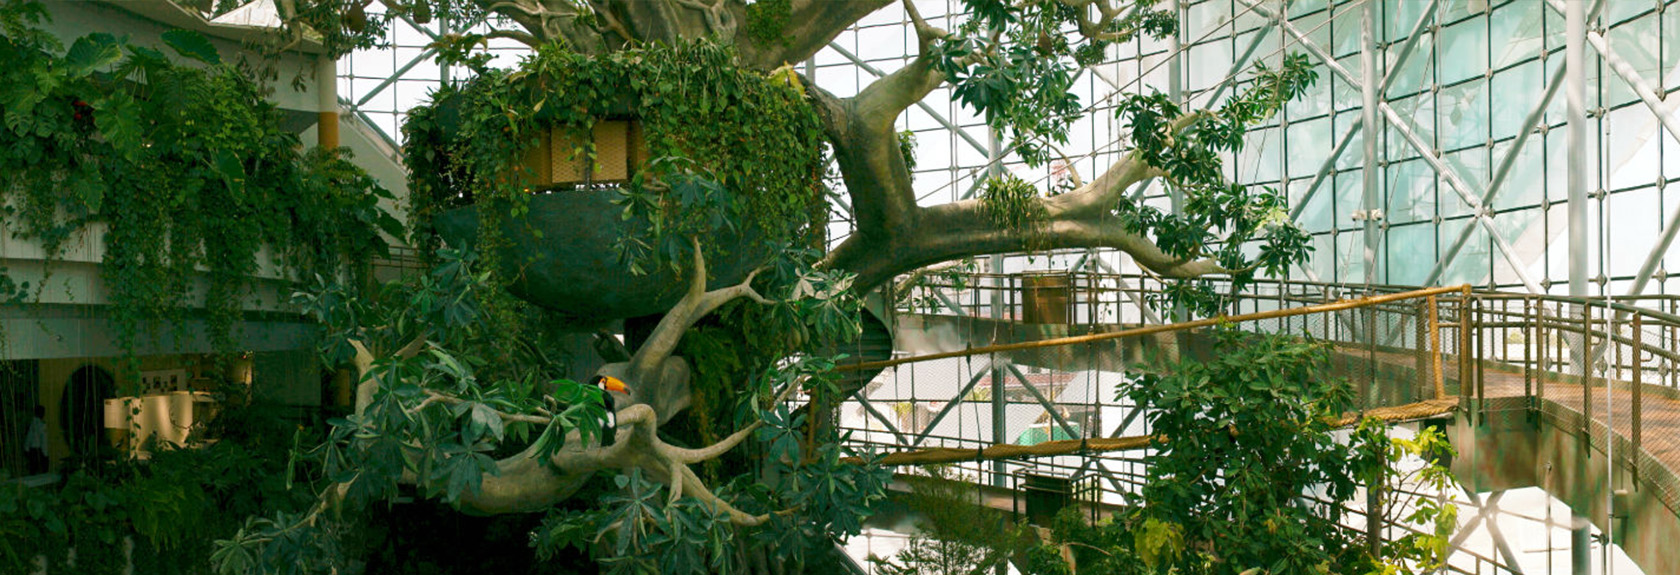 The Green Planet – een indoor tropisch regenwoud in de woestijn